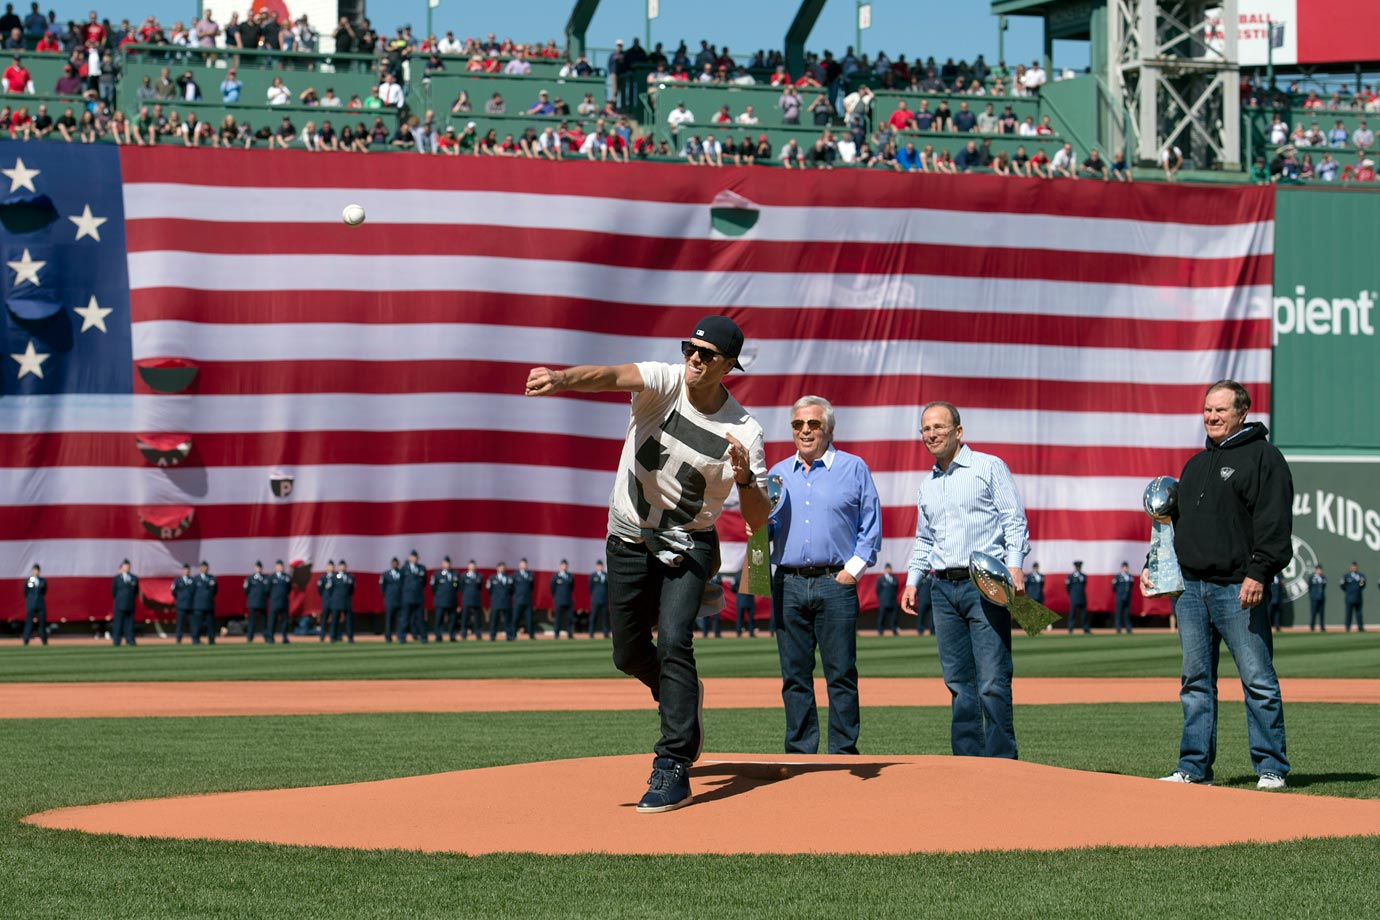 April 13 at Fenway Park in Boston